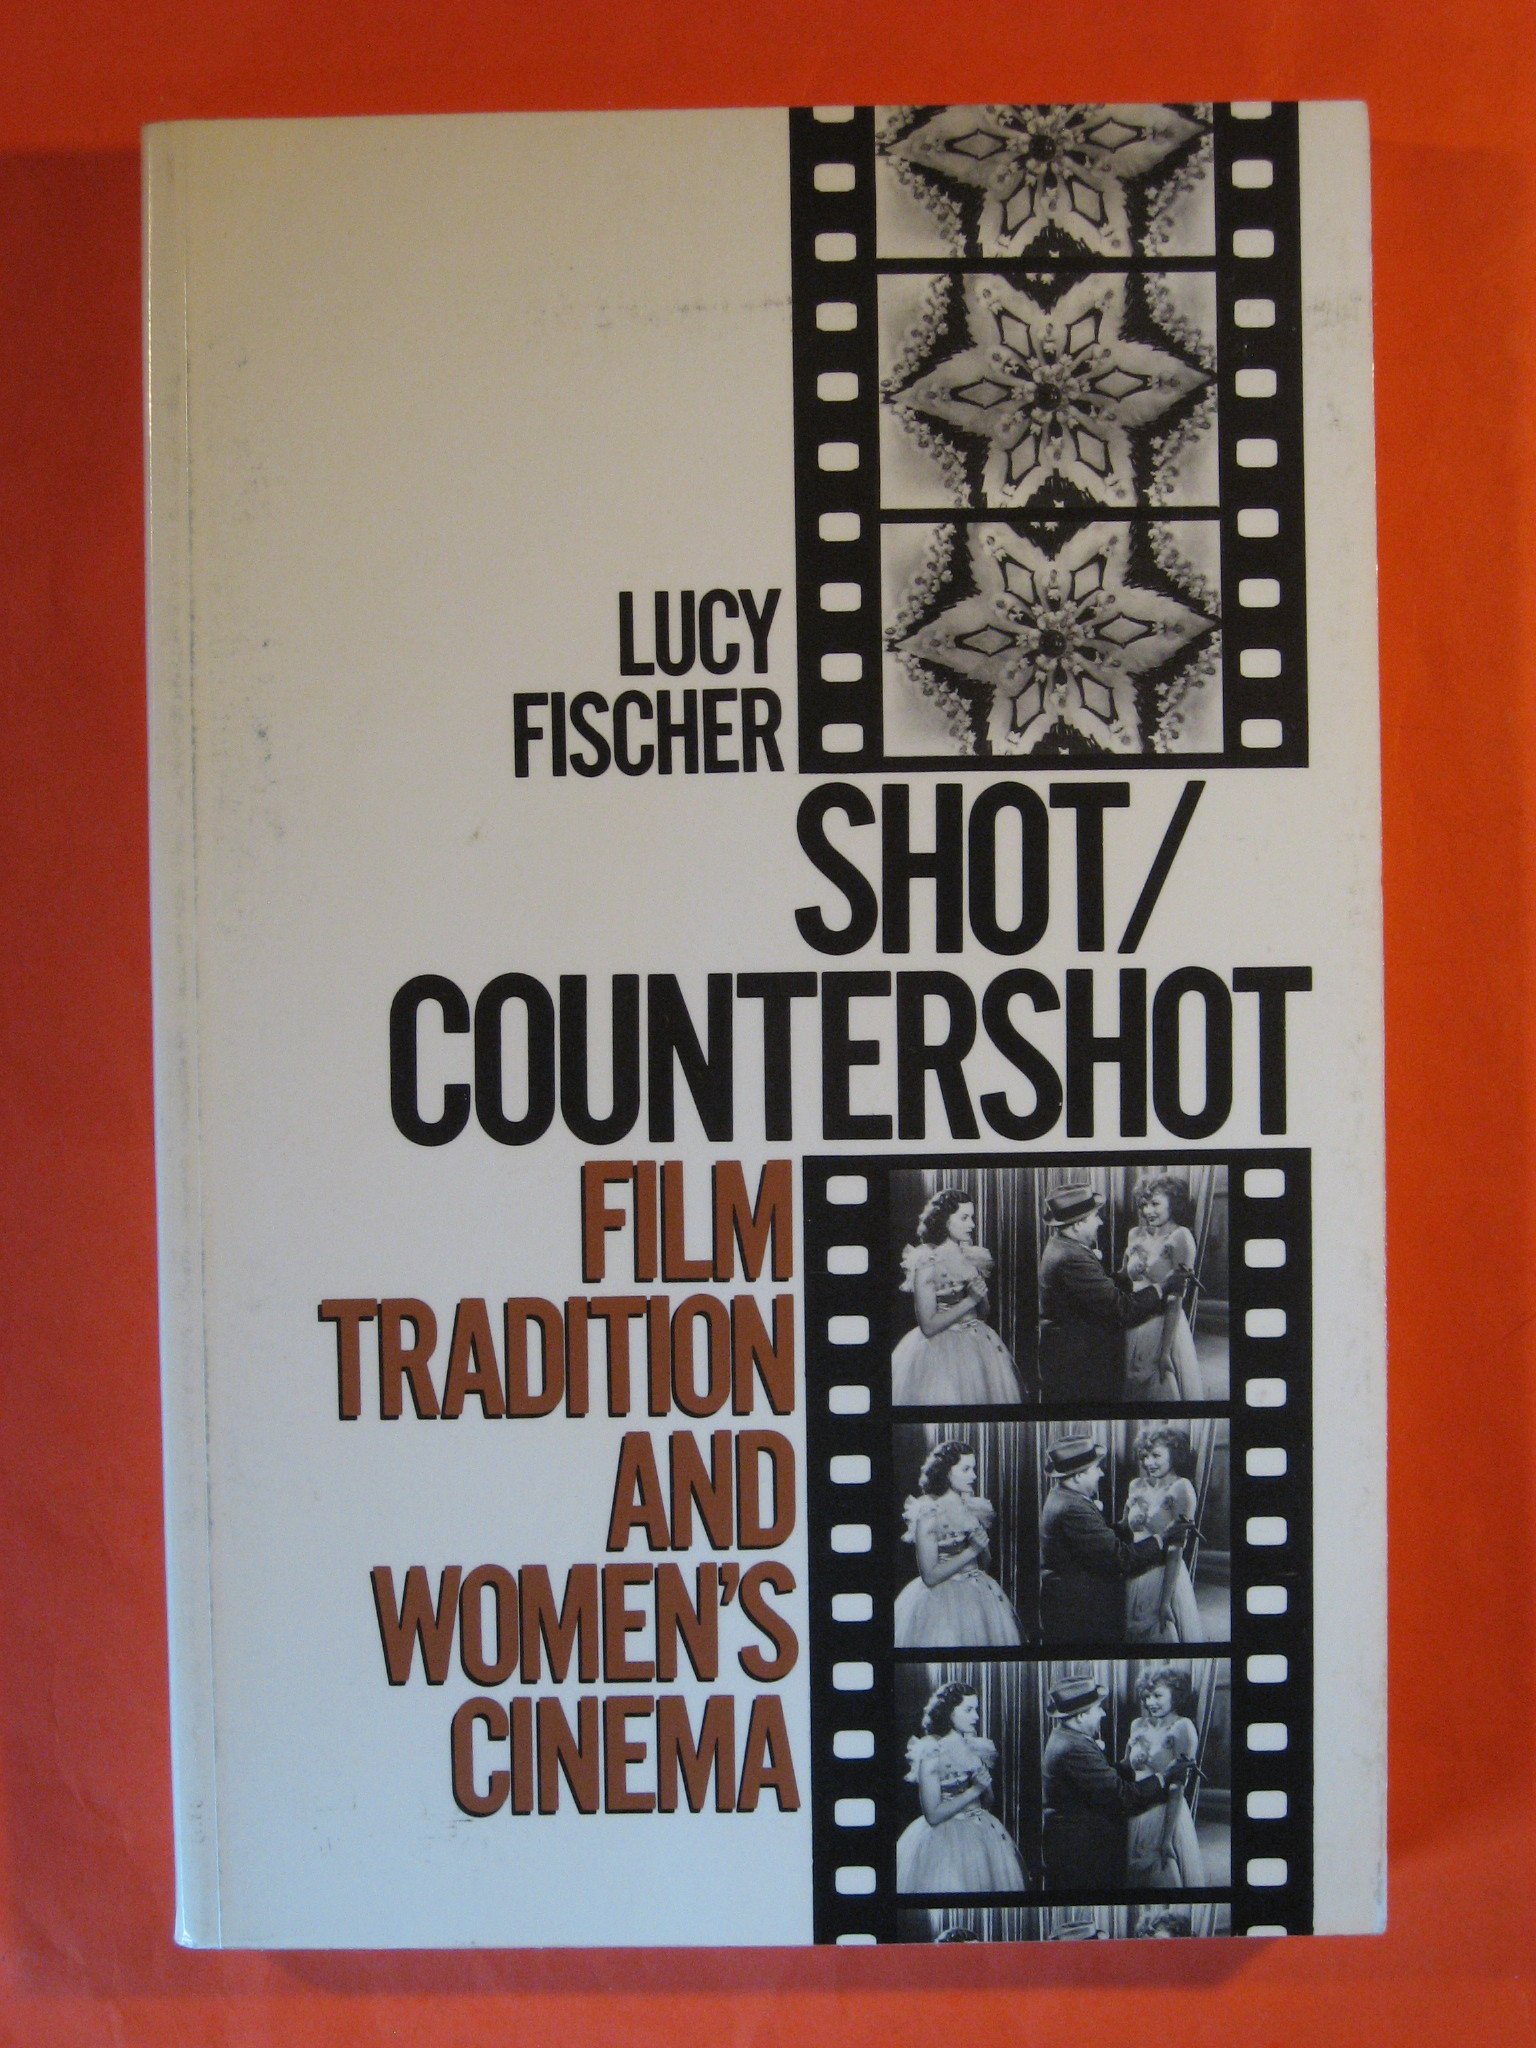 Shot/Countershot: Film Tradition and Women's Cinema (Princeton Legacy Library), Fischer, Lucy